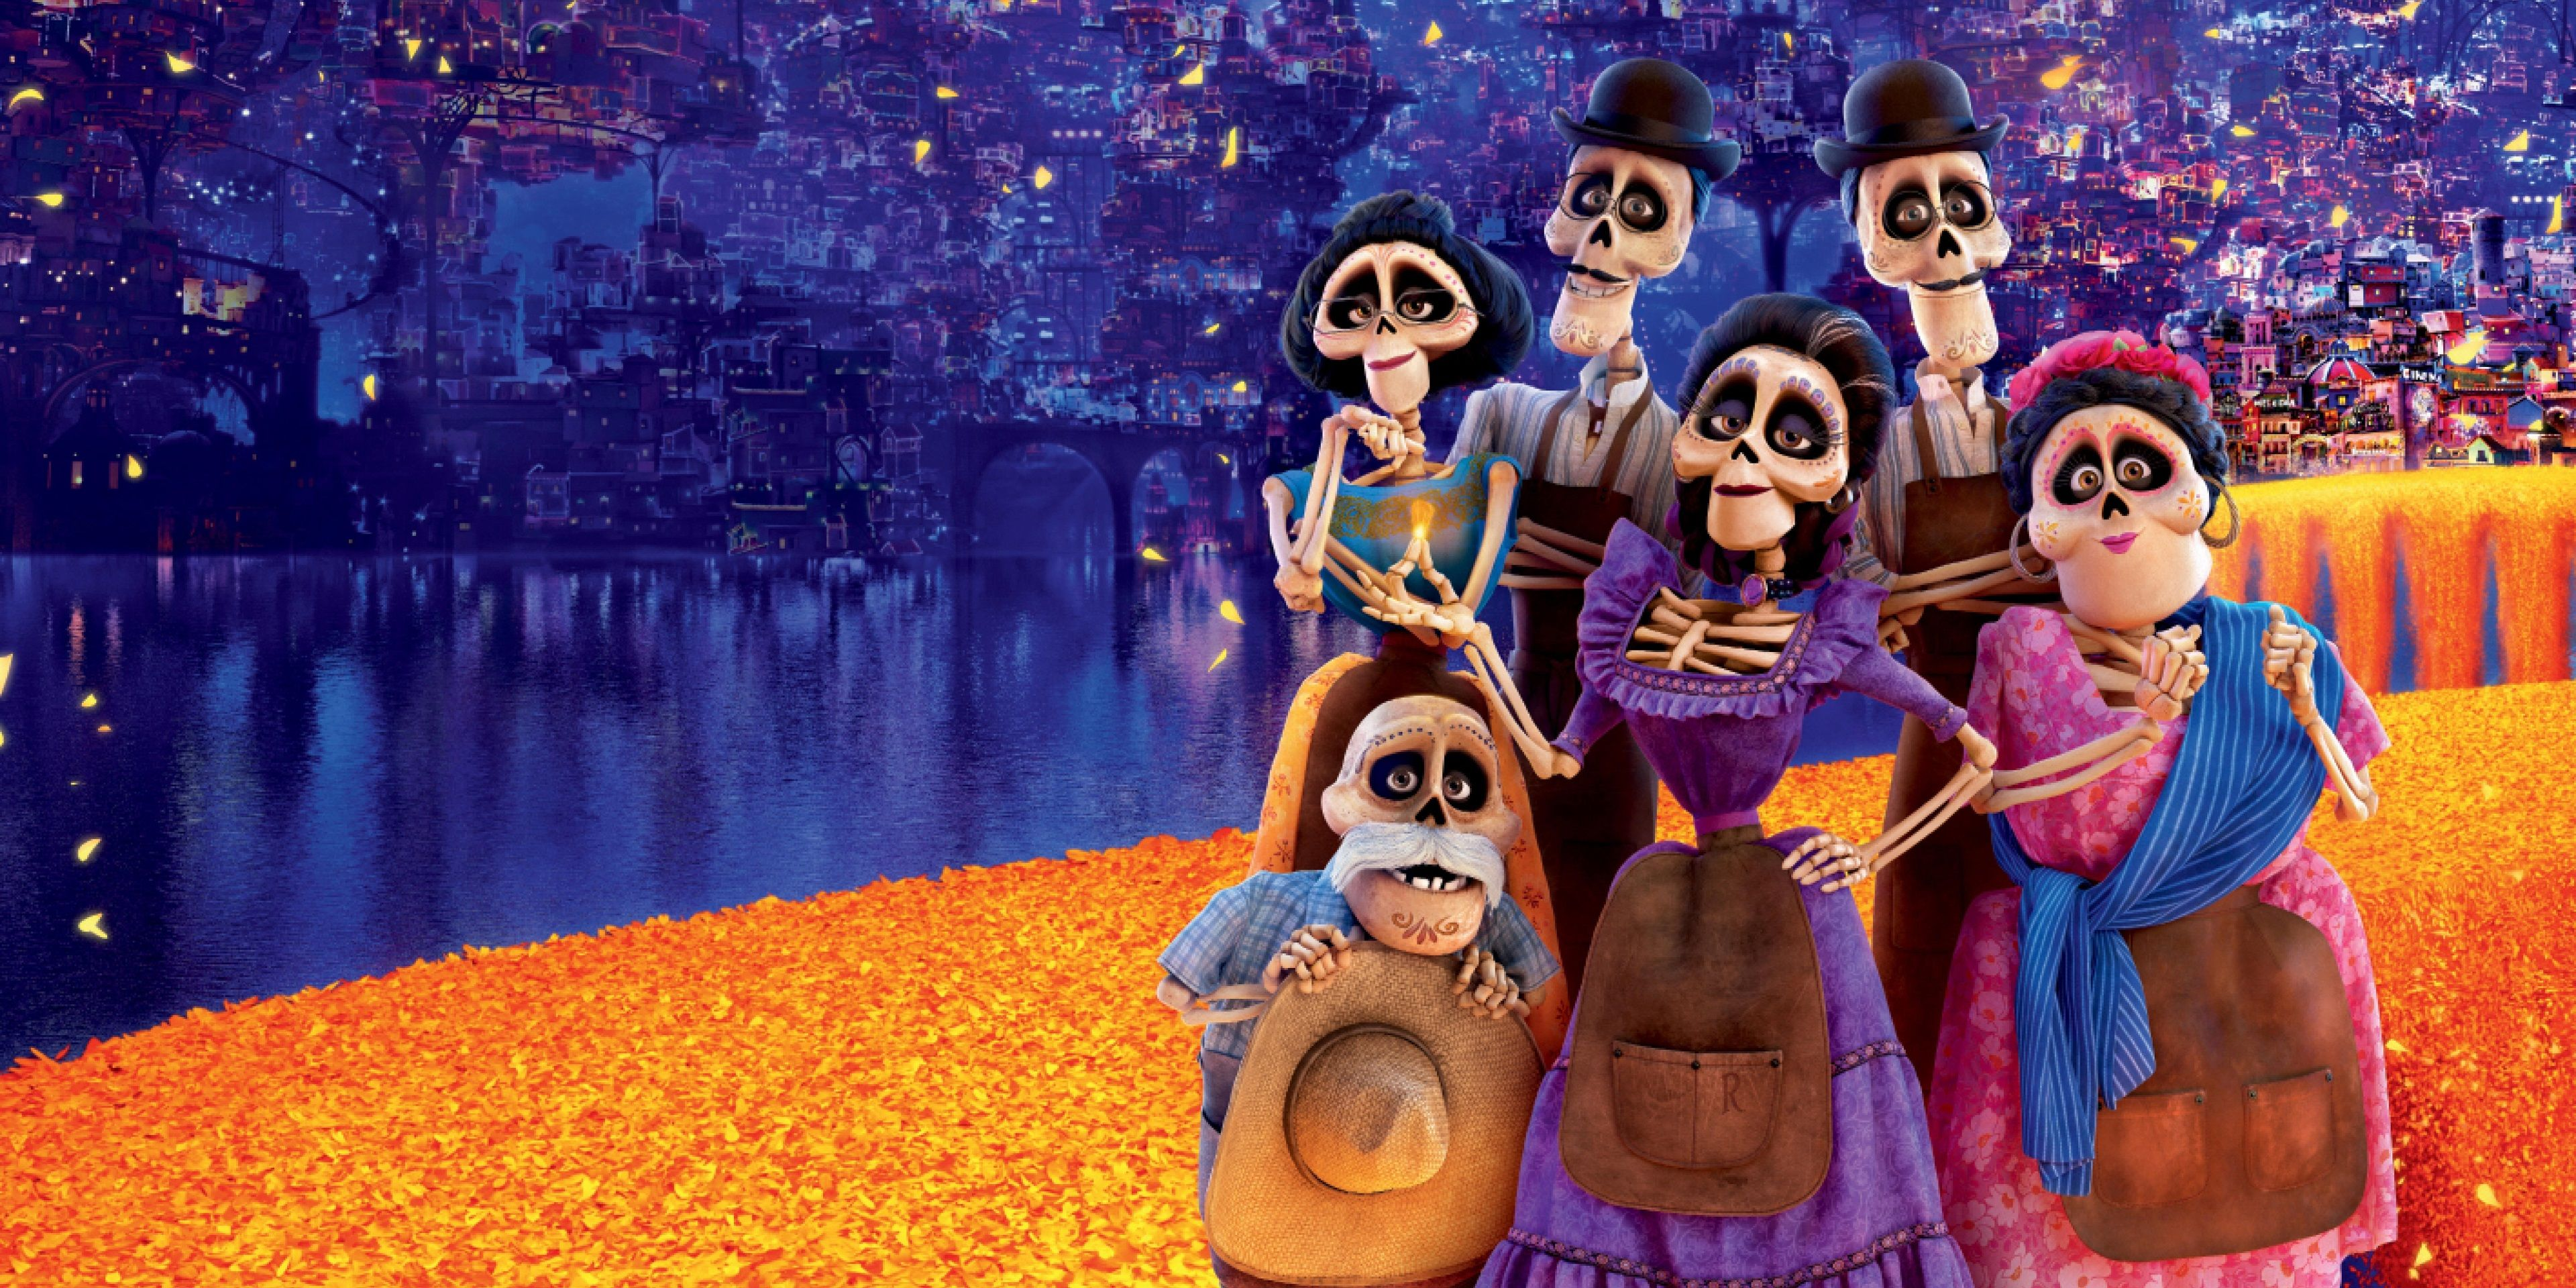 3840x1920 Coco 4k Wallpaper Hd Free Download Animated Movies Movie Wallpapers Animation